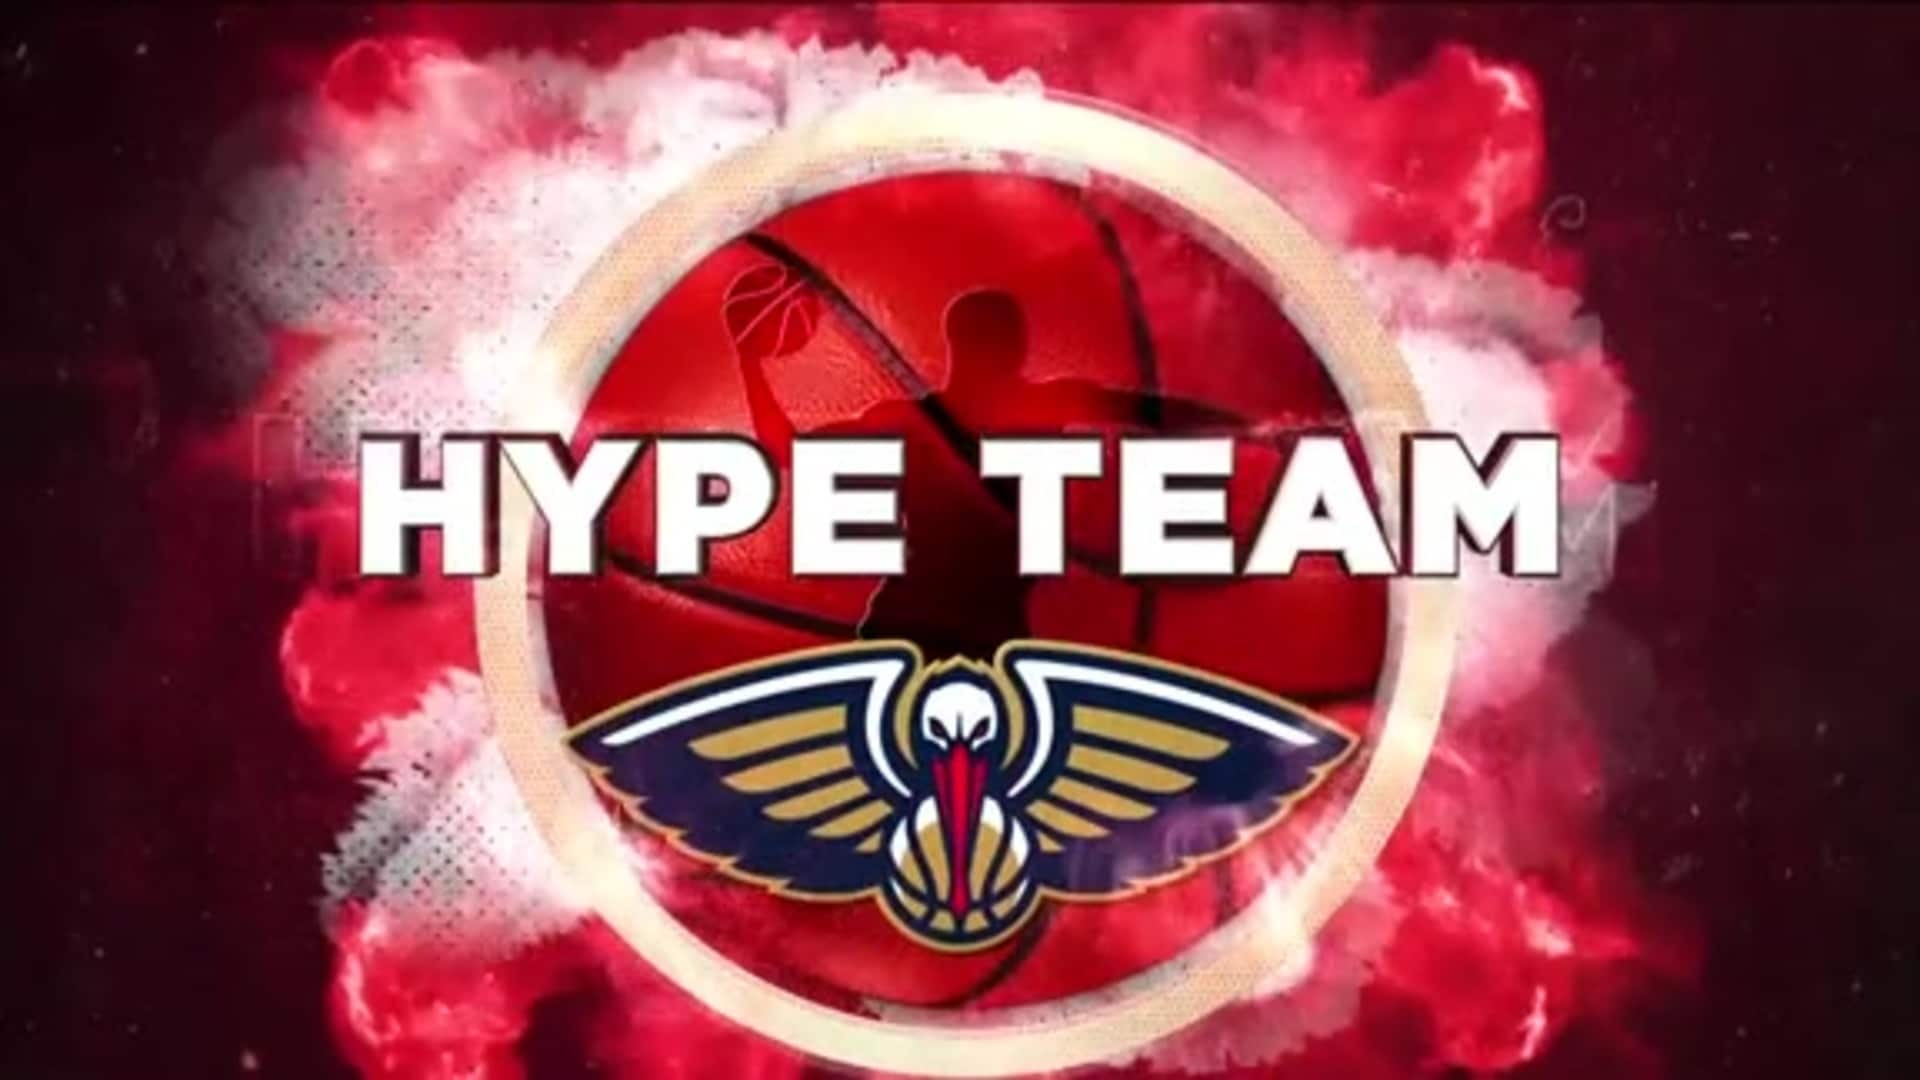 Entertainment: Pelicans Dance & Hype Team 2nd quarter performance - January 31 vs. Memphis Grizzlies